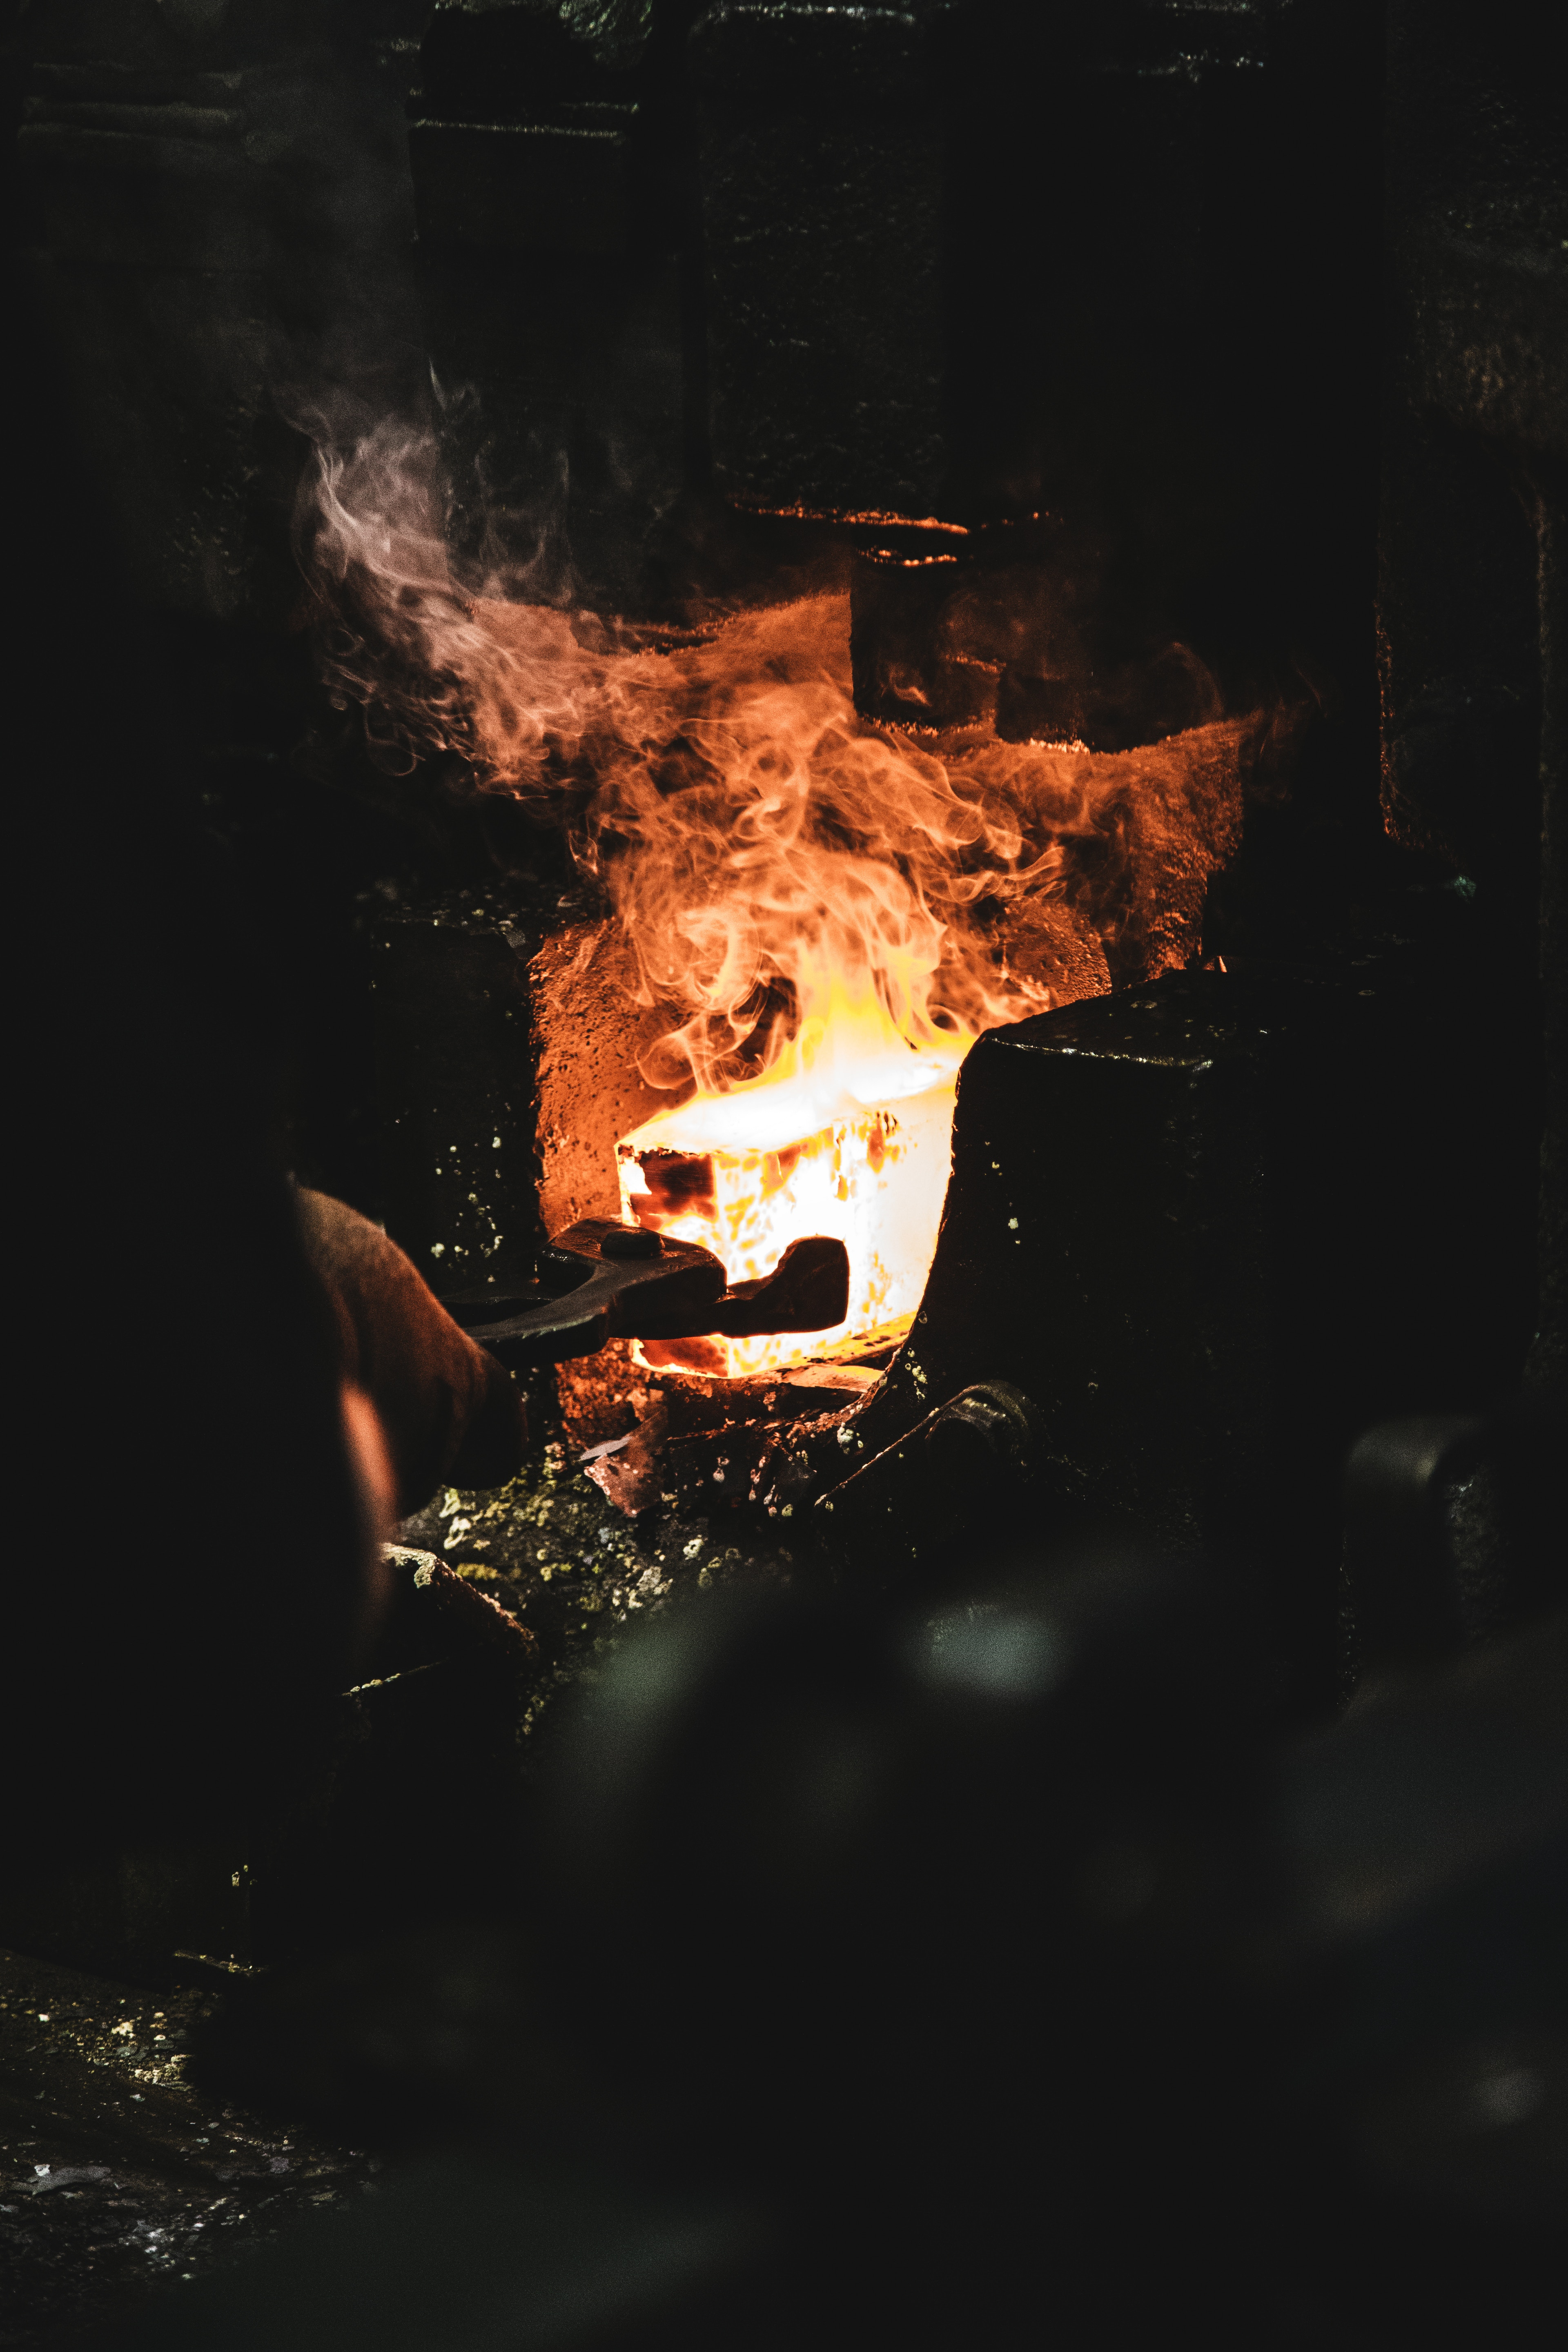 A person melting iron in a forge